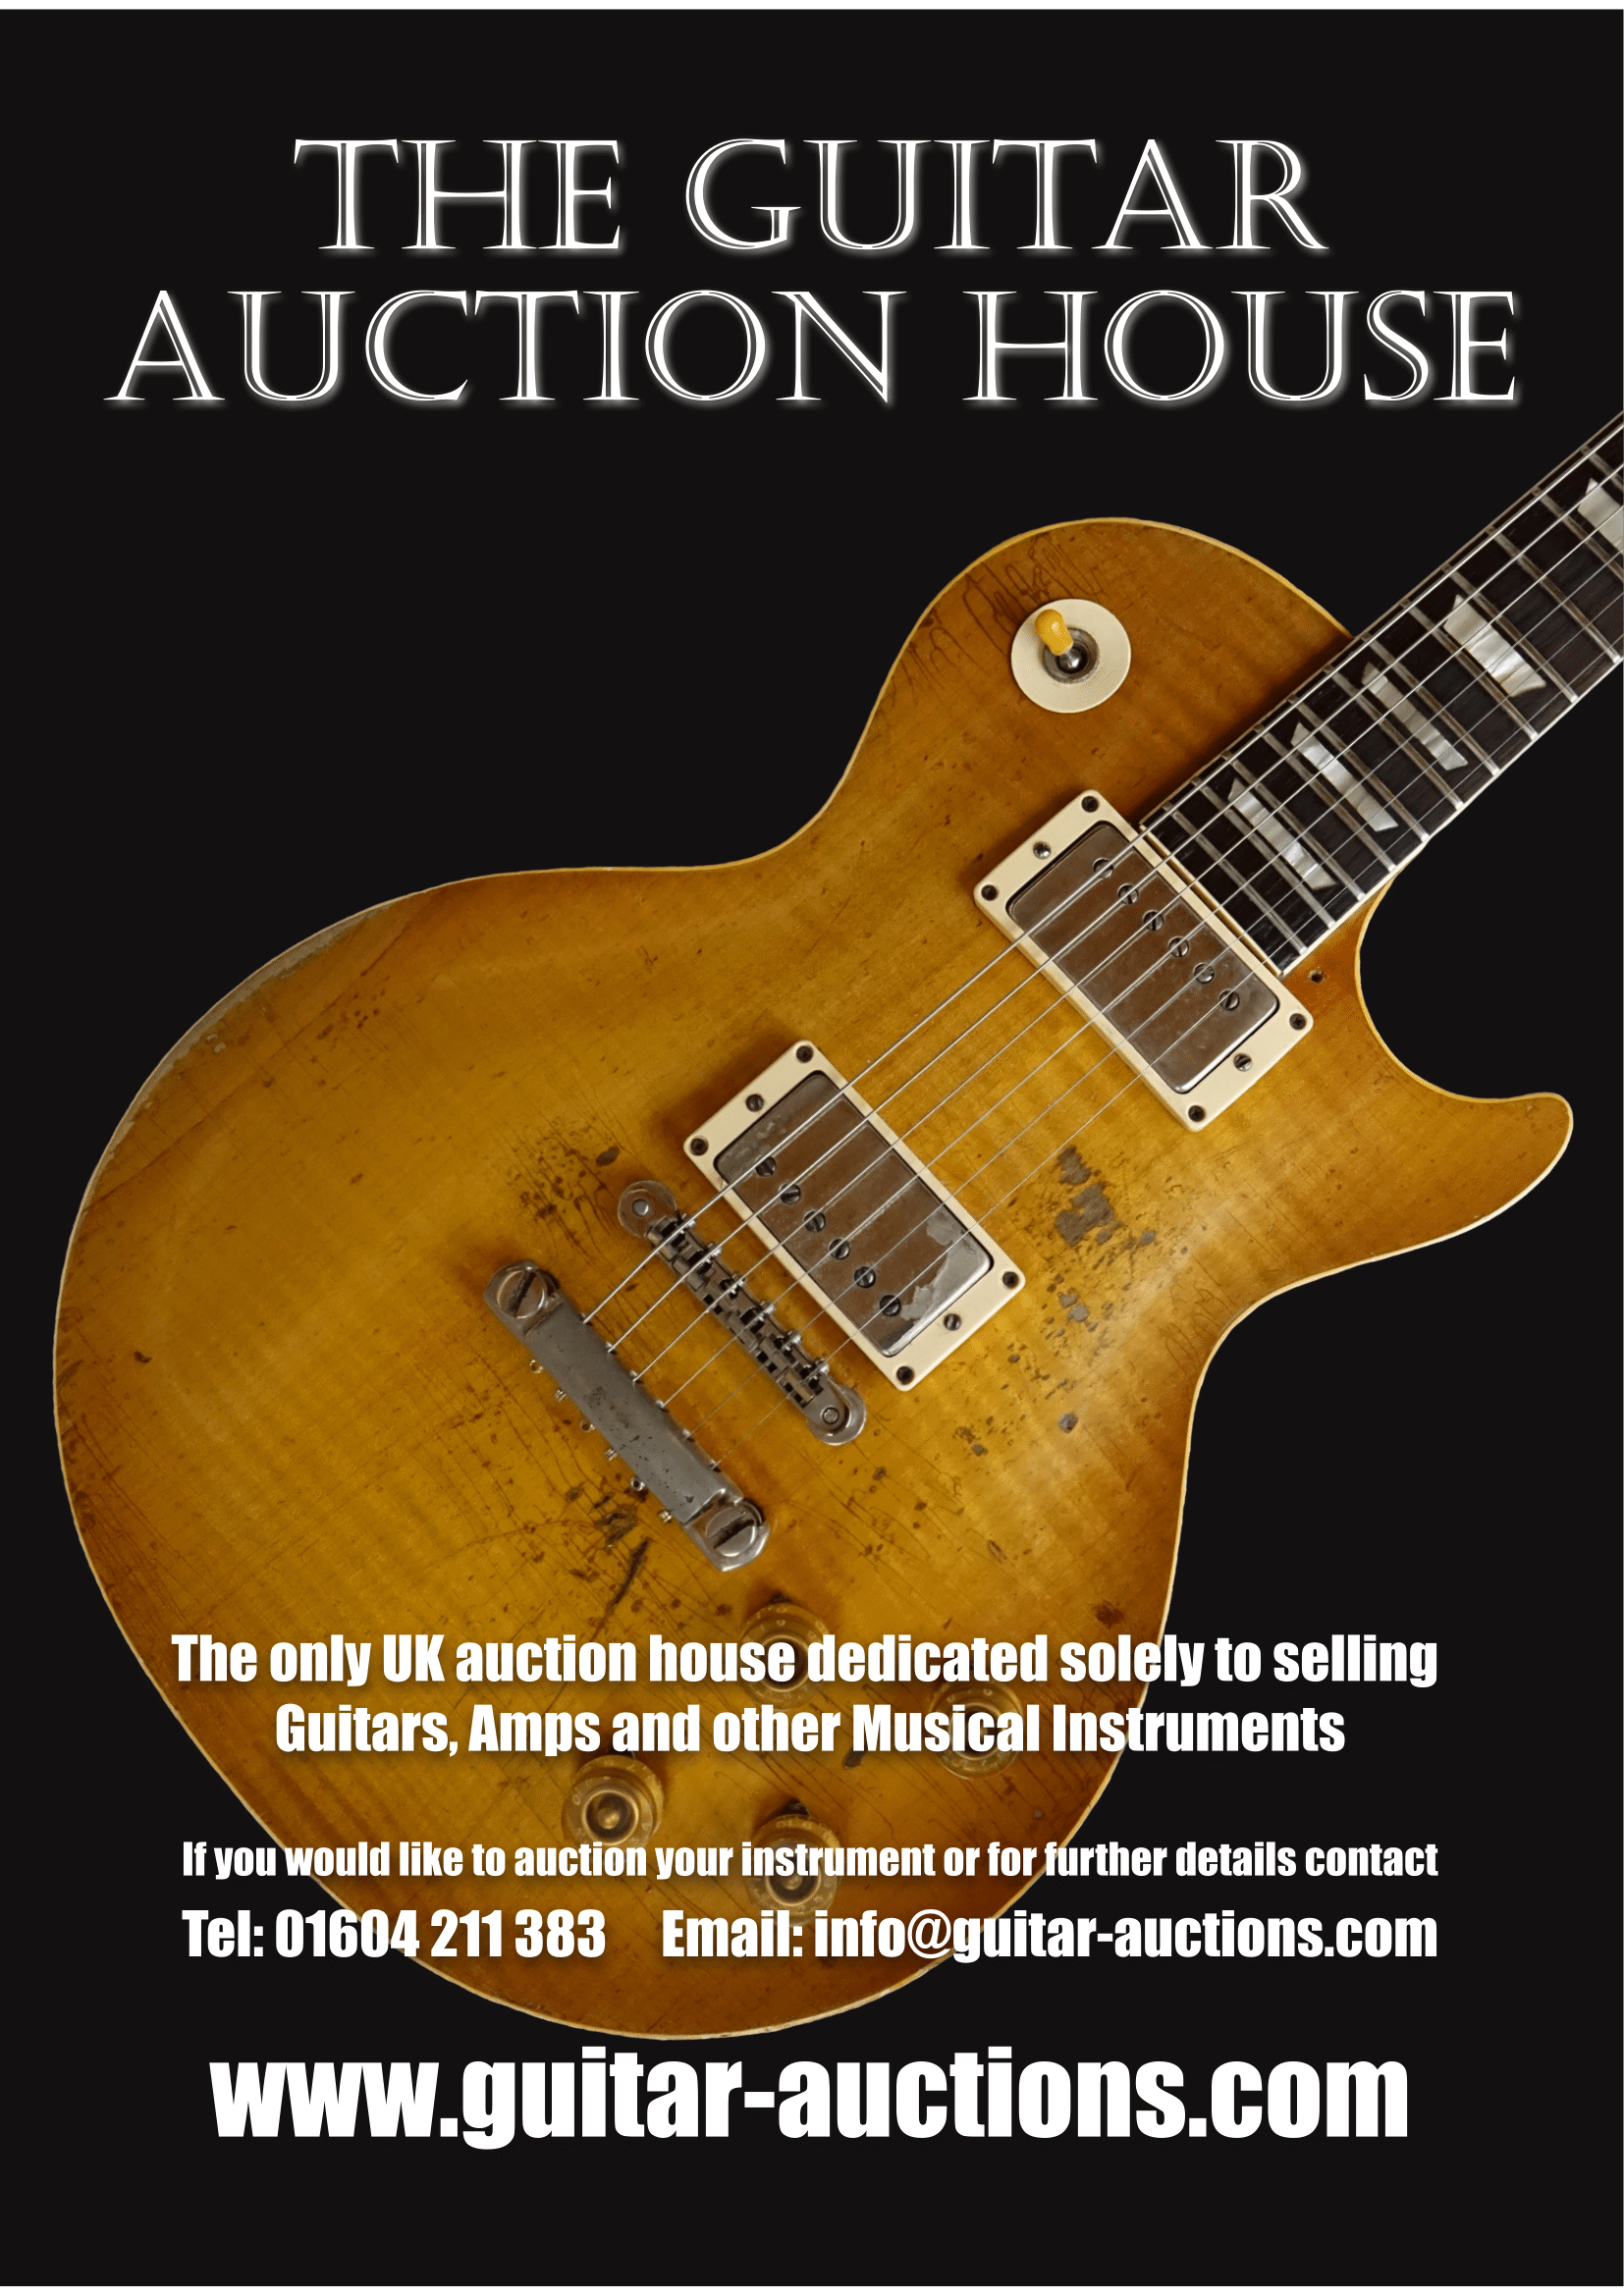 The Guitar Auction House launches at Northampton Guitar Show 2018